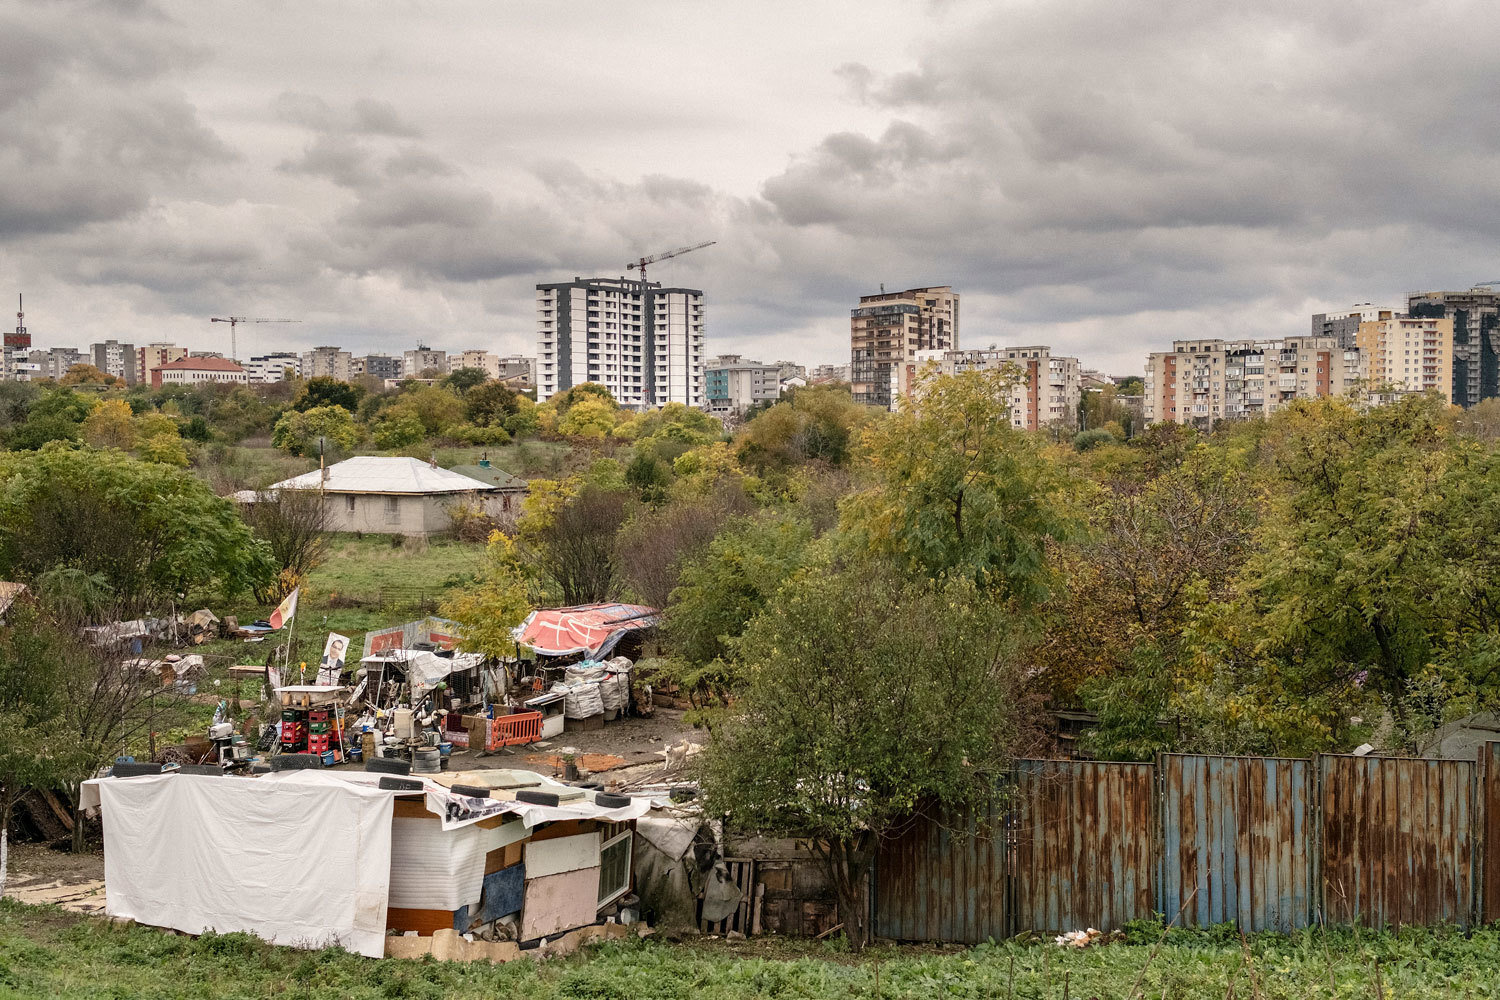 2016 Romania, Bukurest. Slum, Boris Németh, Audiovisual Library of the European Commission, CC BY-NC-ND